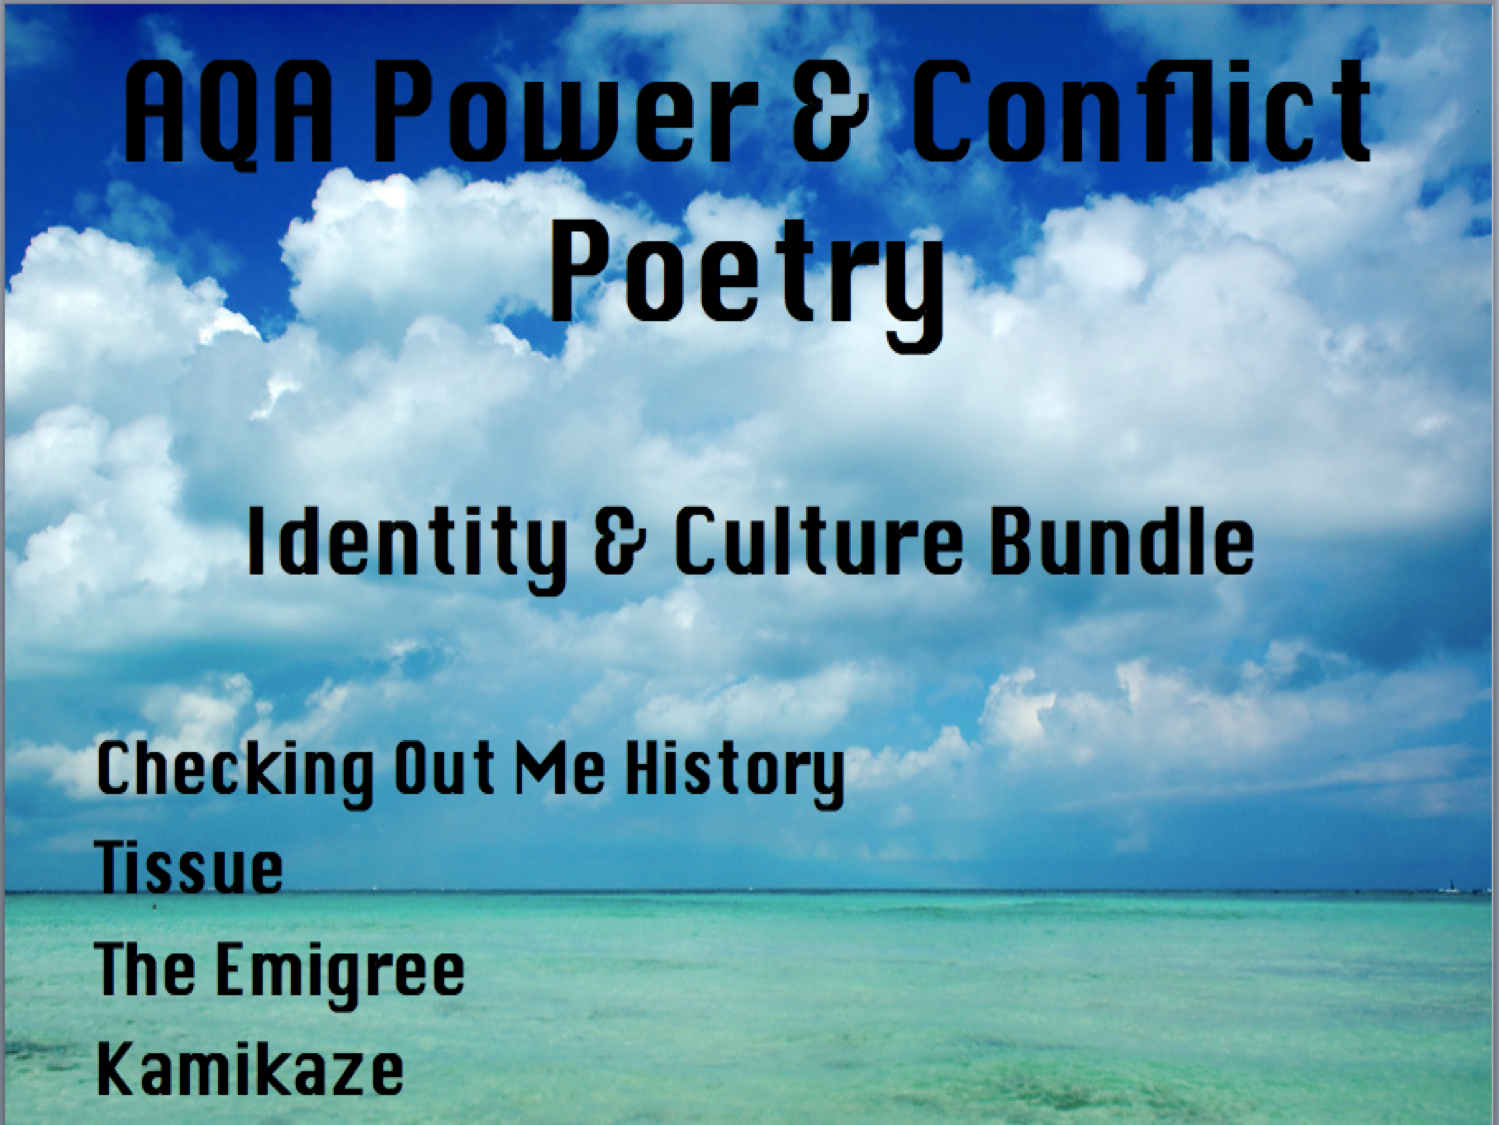 English Literature Power & Conflict Poetry- Identity and Culture Bundle-  AQA New Spec 2017